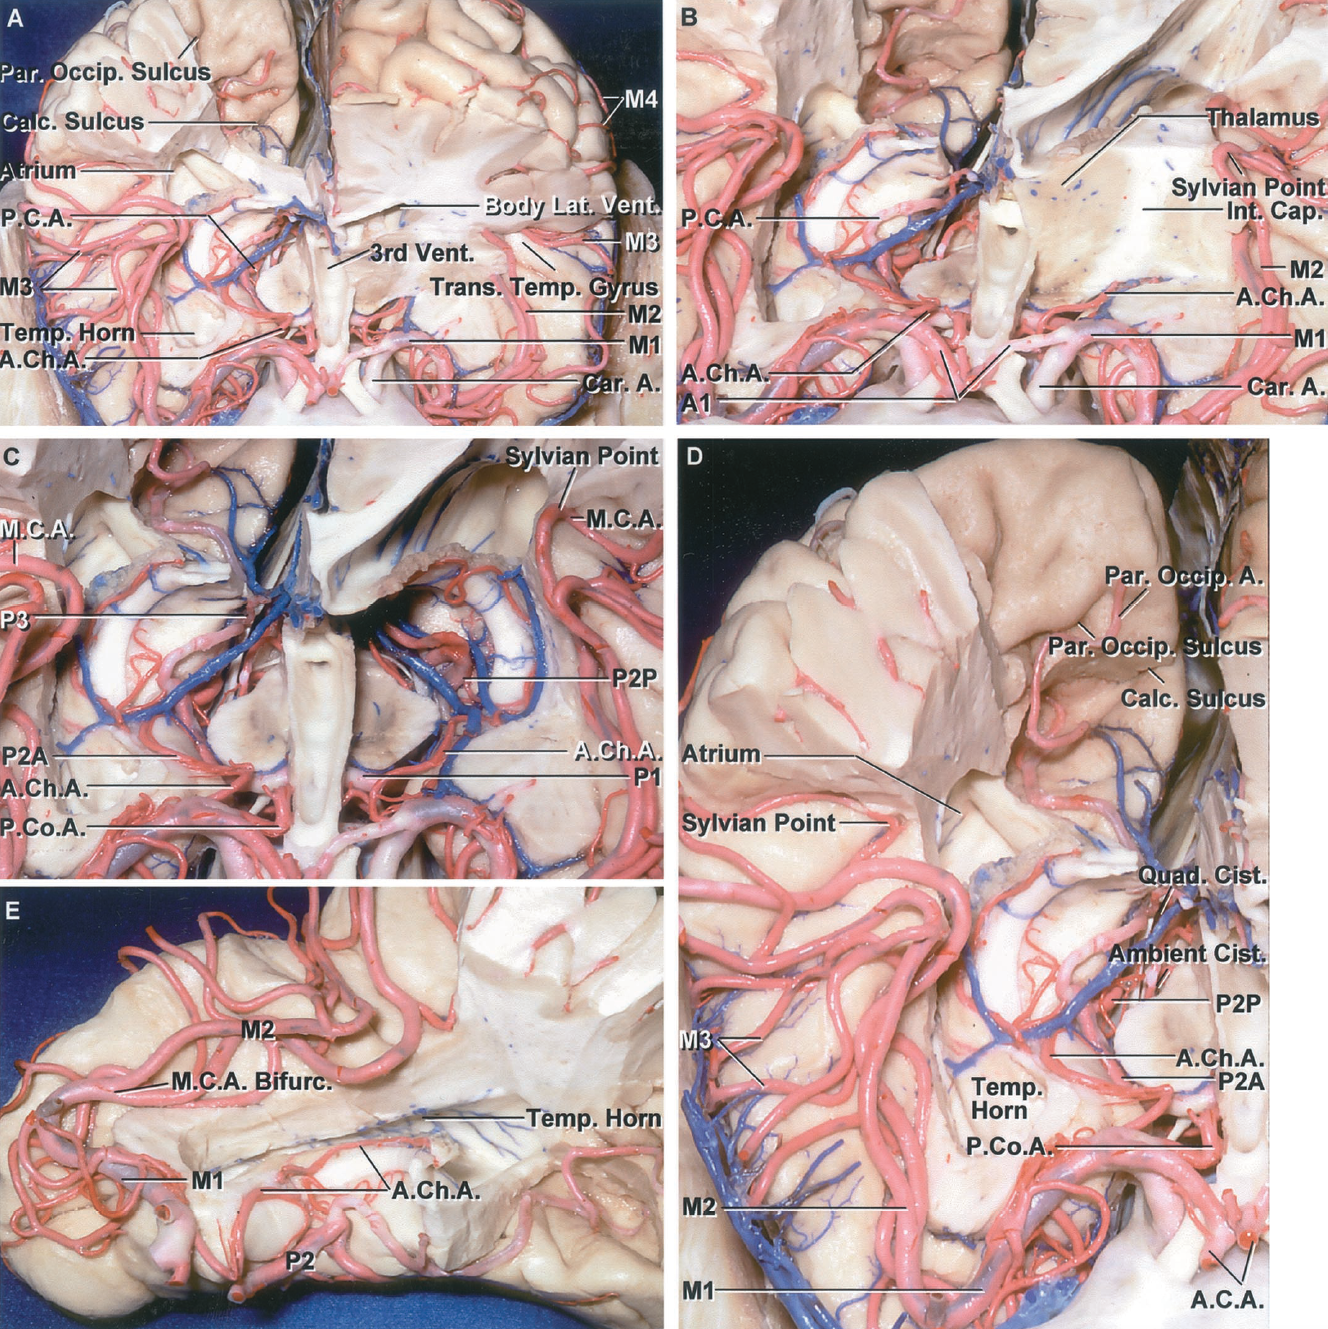 FIGURE 2.14. Superior views of the cerebral arteries. A, the upper part of the right cerebral hemisphere has been removed to expose the temporal horn, atrium, and the basal cisterns. The part of the left hemisphere anterior to the midportion of the body of the lateral and above the sylvian fissure has been removed. The ICAs ascend on the lateral side of the optic nerves. The MCAs travel laterally in the sylvian fissures. The M1 crosses below the anterior perforated substance. The trunks of the M2 cross the insula and the M3 extends around the opercular lips. The M4 is formed by the cortical branches on the convexity. The PCAs pass posteriorly in the crural and ambient cisterns to reach the quadrigeminal cistern. The ACA passes above the optic chiasm. The floor of the third ventricle and the calcarine and parieto-occipital sulcus have been exposed. The upper lip of the parieto-occipital sulcus formed by the precuneus has been removed. The lower lip of the parieto-occipital sulcus is formed by the cuneus, which also forms the upper lip of the calcarine sulcus. B, enlarged view. The AChAs enter the choroid plexus in the temporal horn. The sylvian point is located where the most posterior branch of the M2 turns away from the insular surface and toward the lateral convexity. C, the anterior part of the left hemisphere has been removed down to the level of the temporal lobe and the midbrain. The AChAs pass around the upper medial part of the uncus to reach the temporal horn. P2A courses medial to the uncus in the crural cistern, the P2P courses in the ambient cistern, and the P3 courses in the quadrigeminal cistern. D, enlarged view. The M2 crosses the insula just above and lateral to the temporal horn. The artery forming the sylvian point often has its apex directed medially toward the atrium. The parieto-occipital branch of the PCA courses along the parieto-occipital sulcus. The calcarine branch is directed backward in the calcarine sulcus. E, the right temporal lobe ha